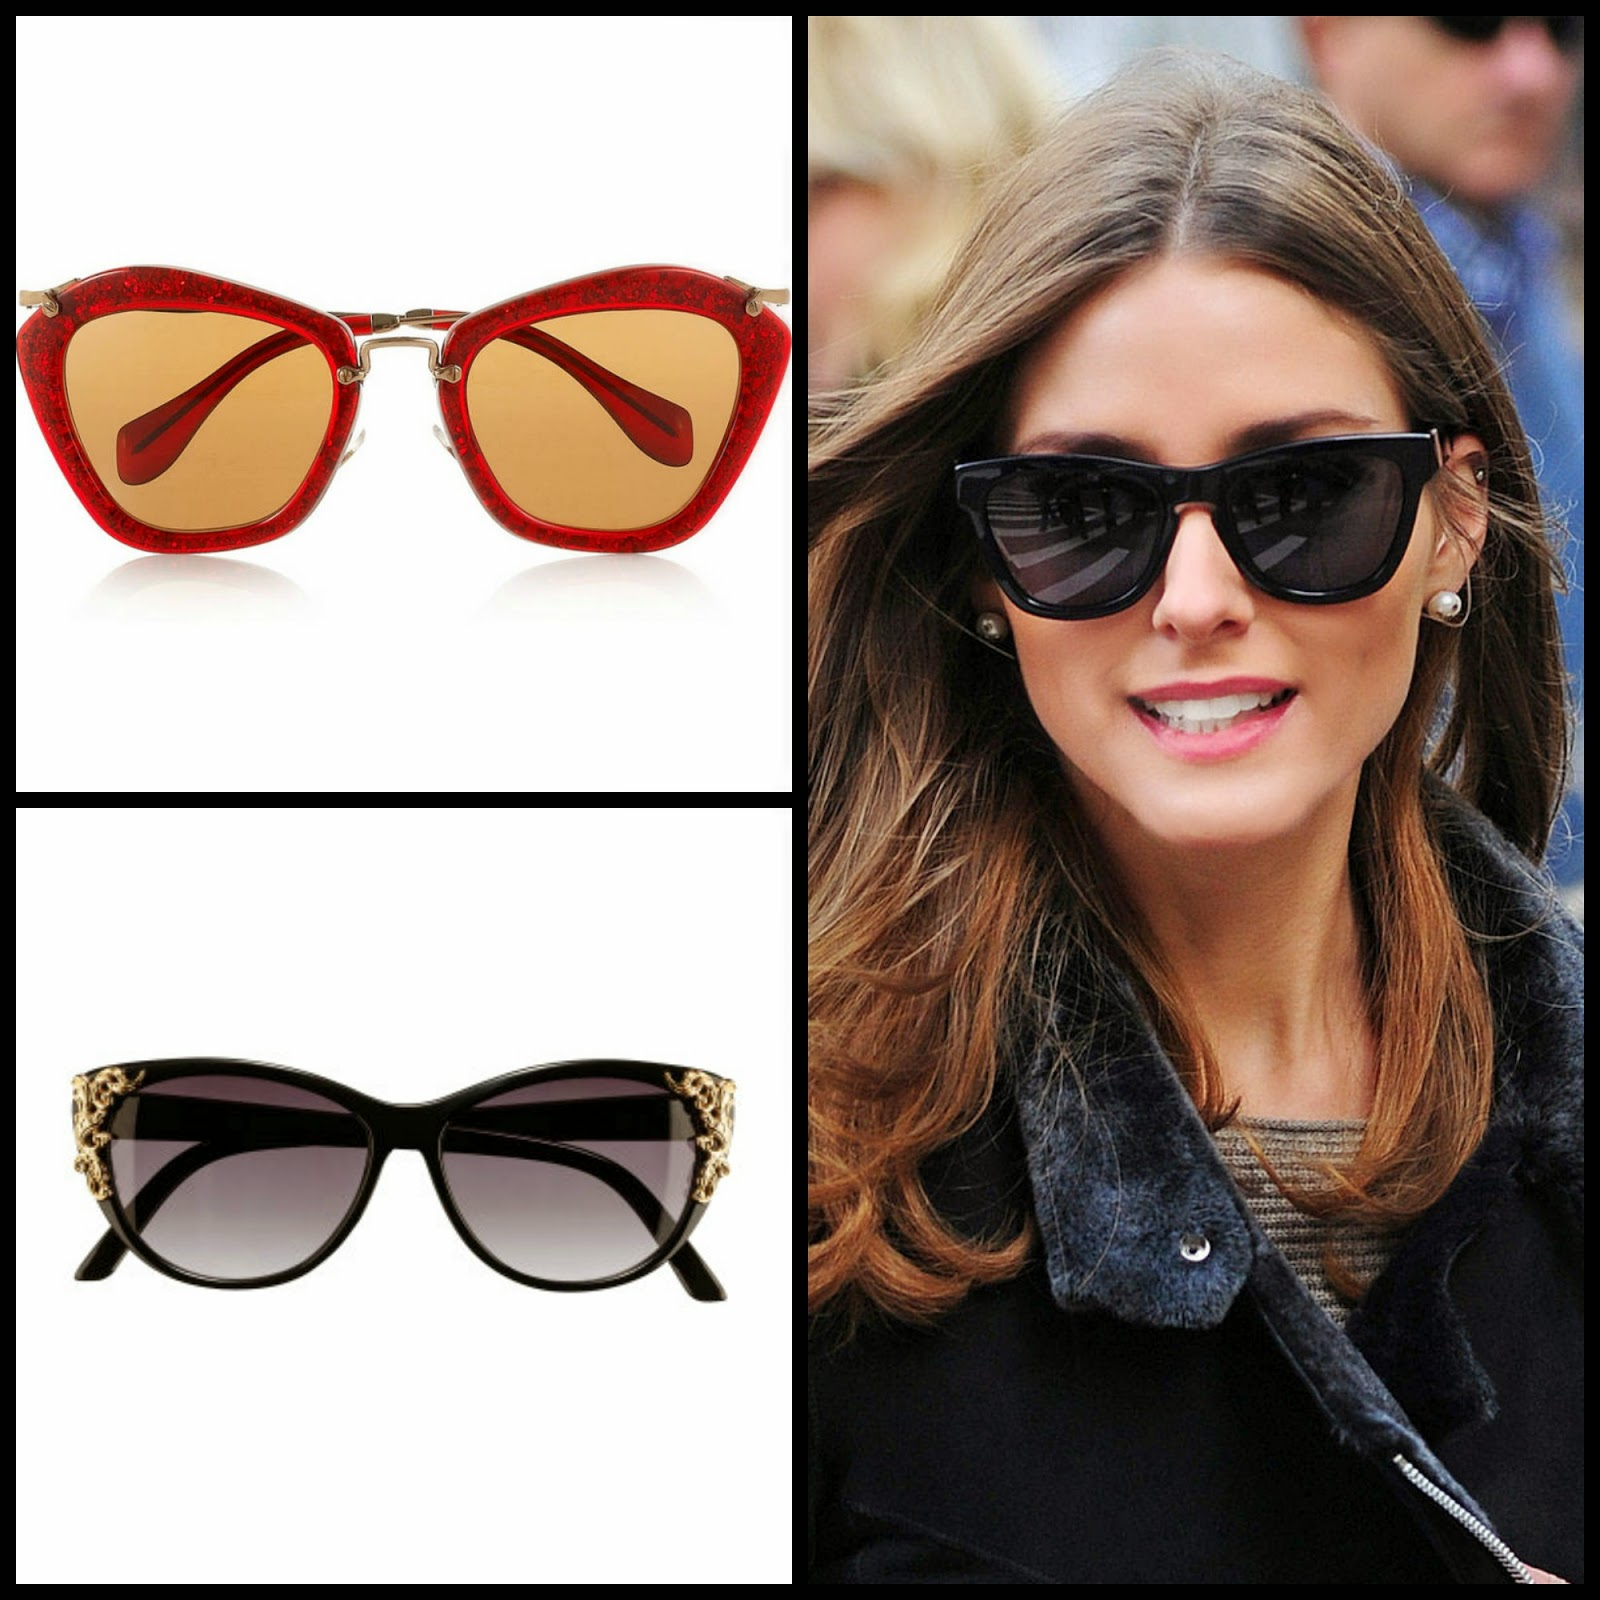 b54cb83f4269 C. Oval face: try cat-eye frames. Brands I recommend are Miu-Miu and H&M.  Olivia Palermo has an oval face shape, and she has been spotted wearing  cat-eye ...